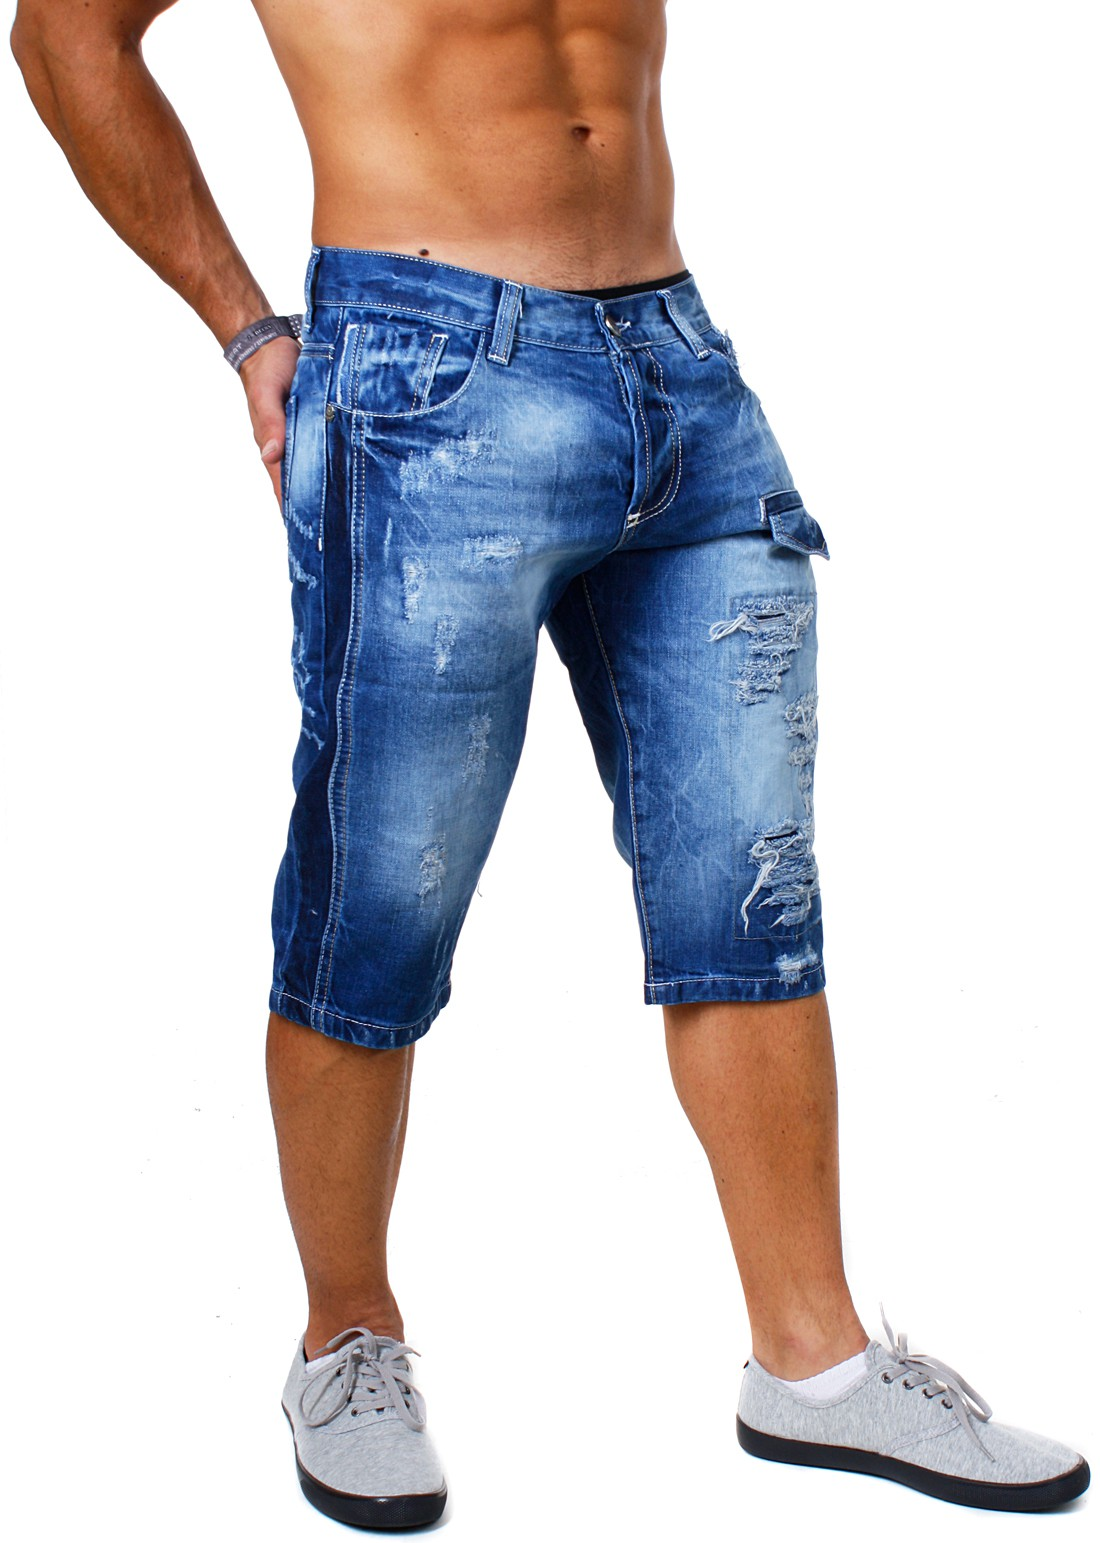 rerock herren denim destroyed jeans shorts vintage used look capri kurze hose zerissene kontrast. Black Bedroom Furniture Sets. Home Design Ideas